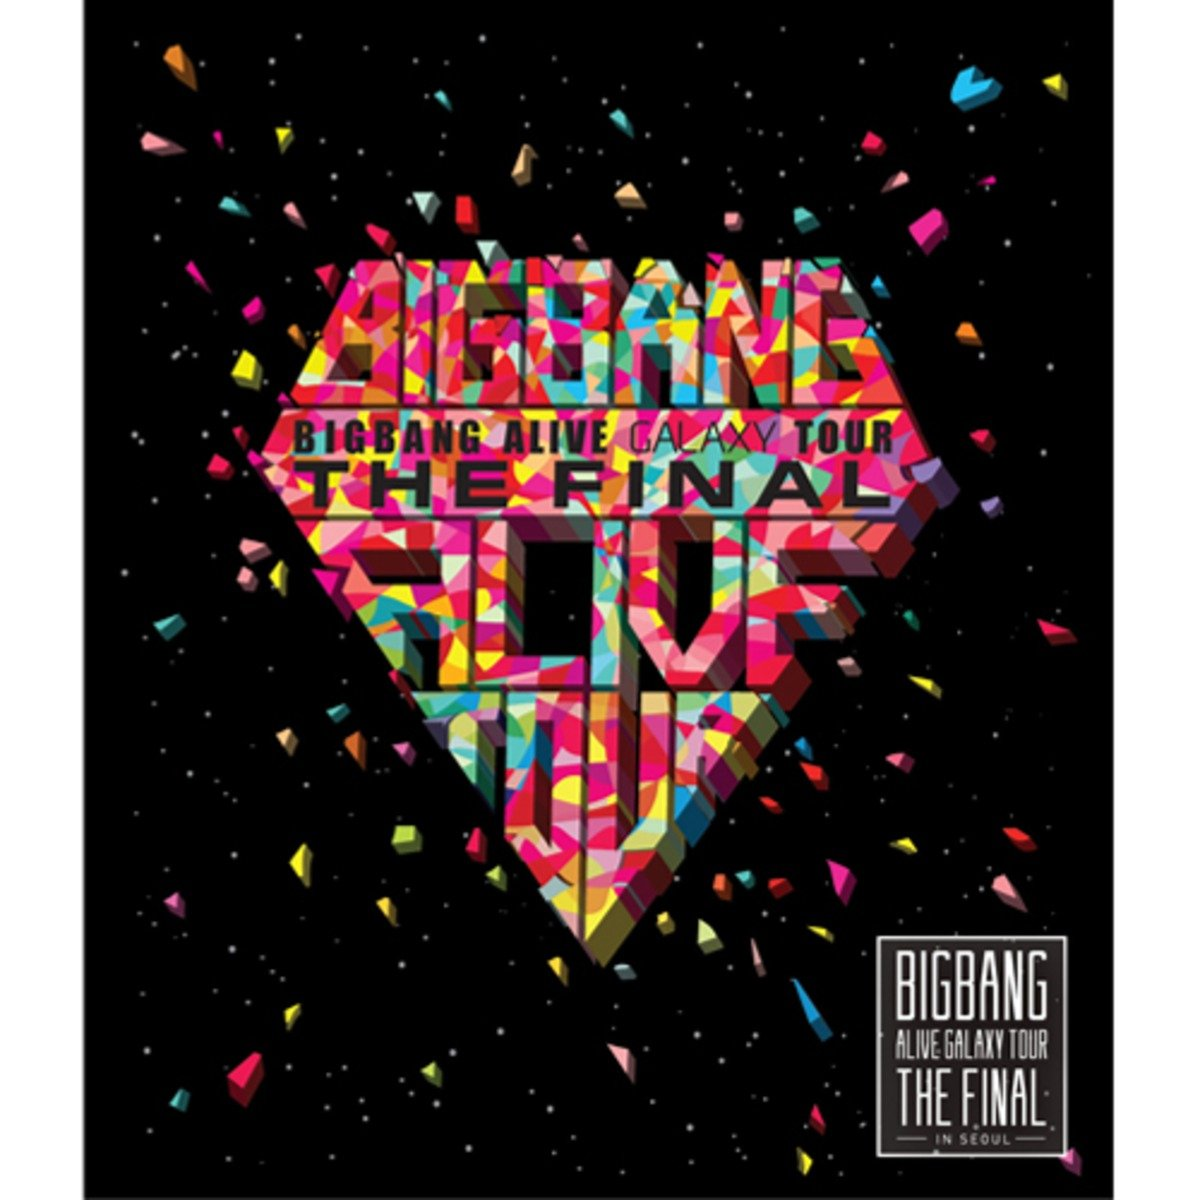 BIGBANG -  2013 Alive Galaxy Tour Live CD [The Final In Seoul](2CD/Limited Edition)_8809314512566